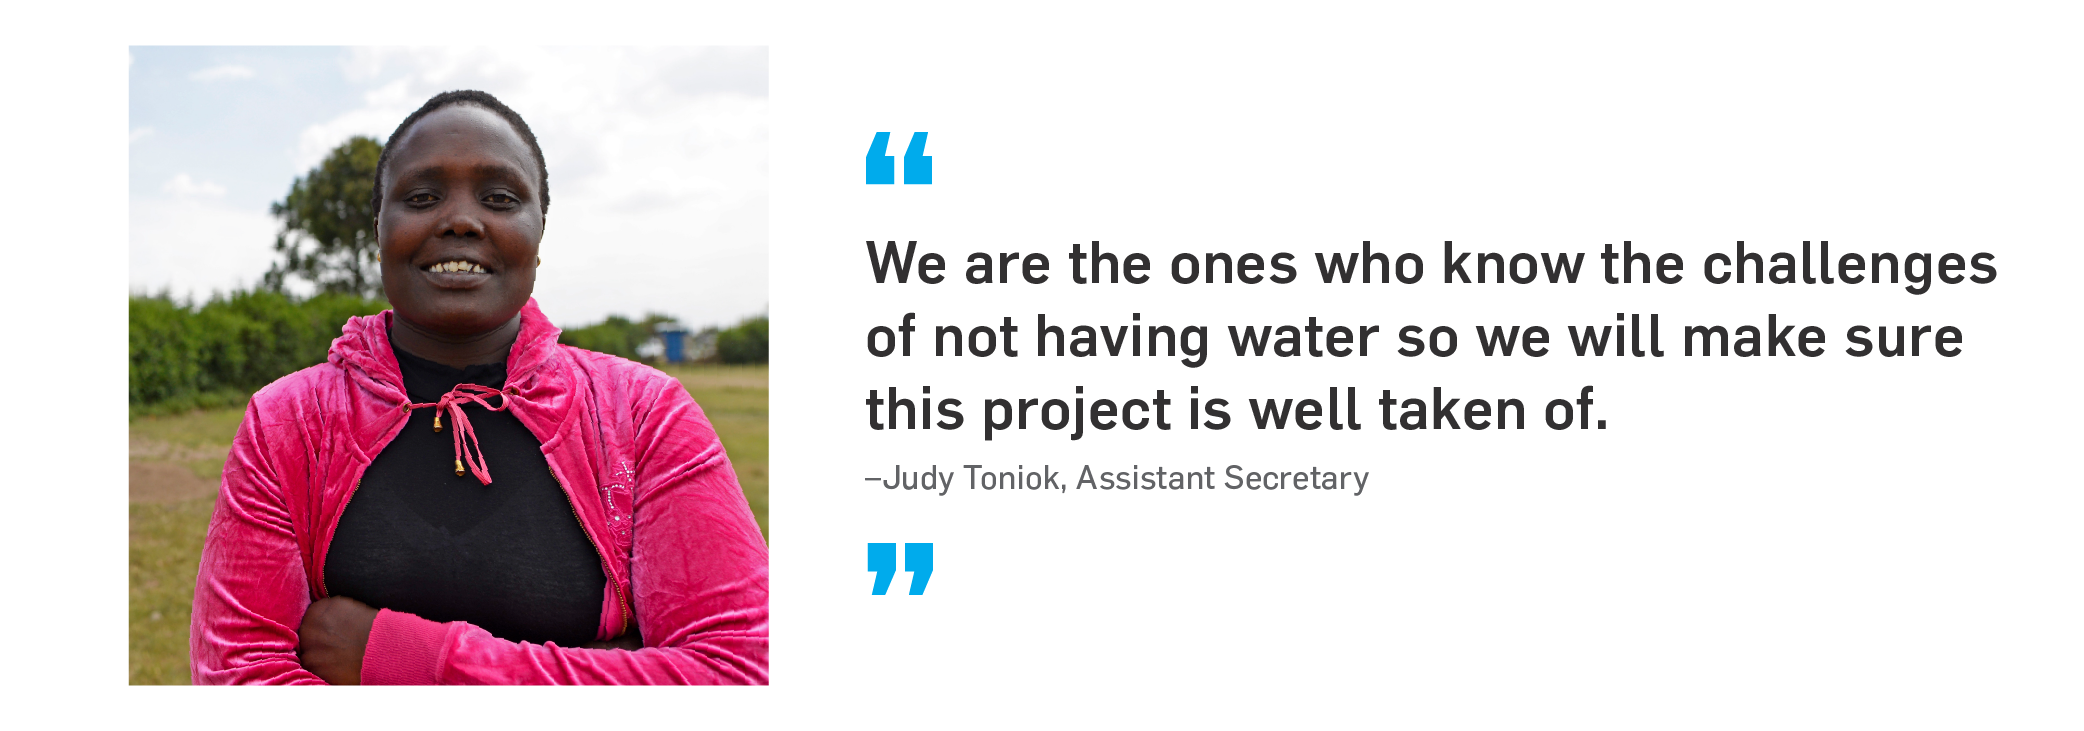 Quote. We are the ones who know the challenges of not having water so we will make sure this project is well taken care of. Unquote. Judy Toniok, Assistant Secretary.